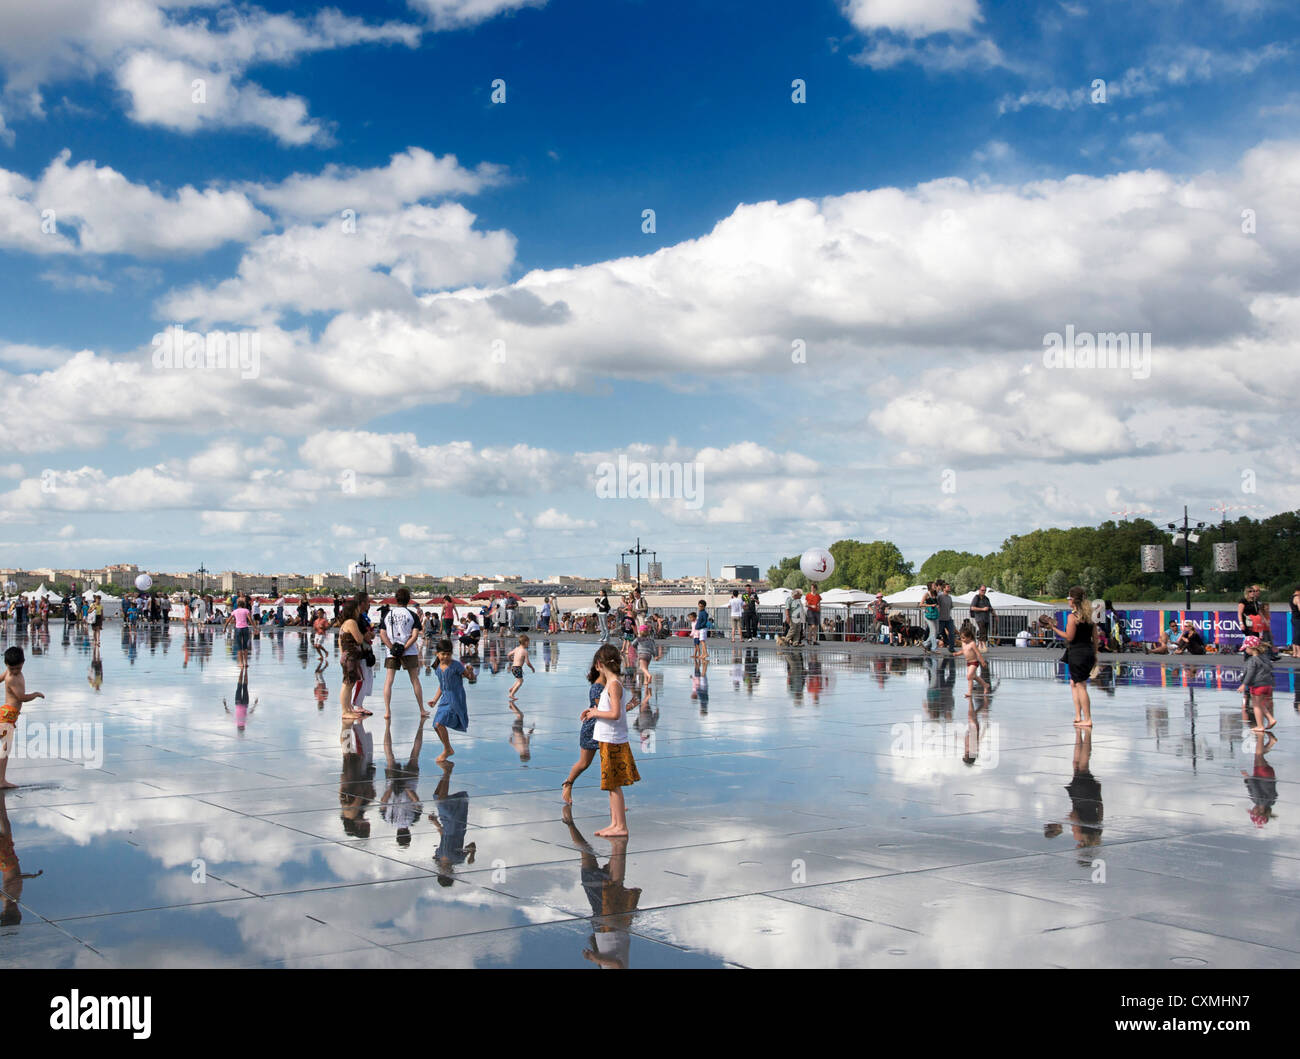 Bordeaux, France - The Water mirror in front of the Stock Exchange Square - Stock Image